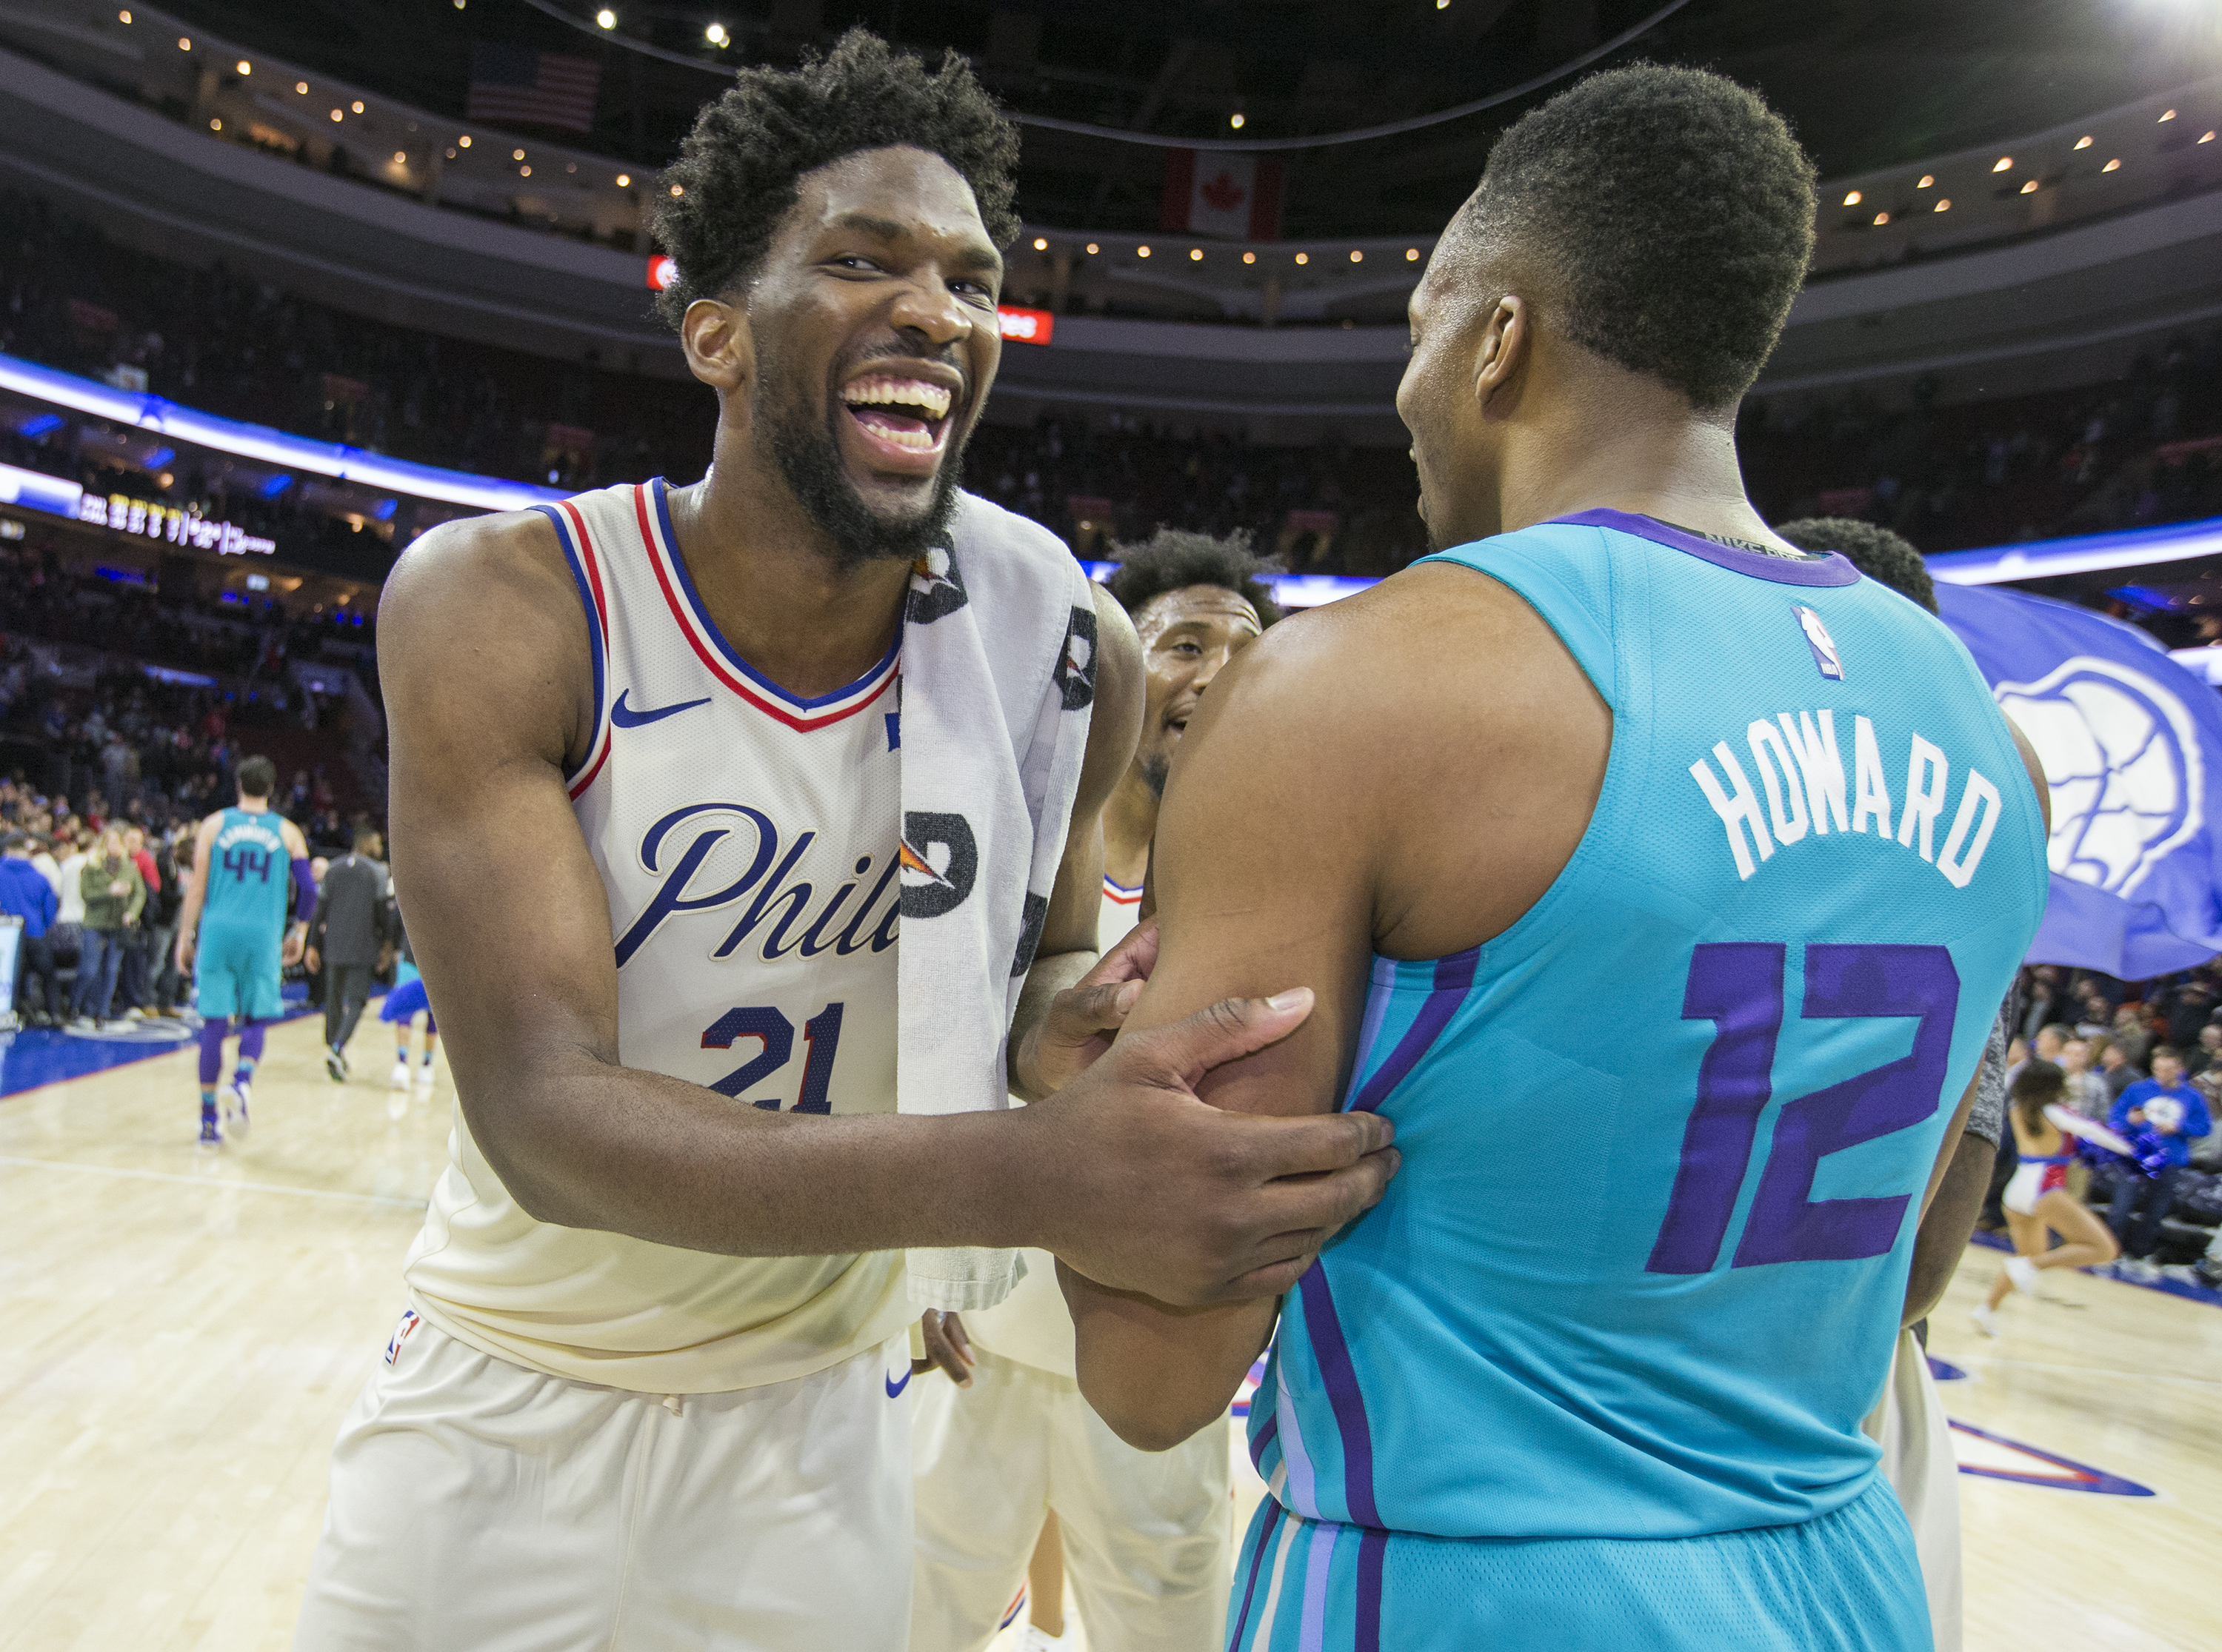 Joel Embiid, left, jokes with Dwight Howard of the Hornets after their game at the Wells Fargo Center on March 2.